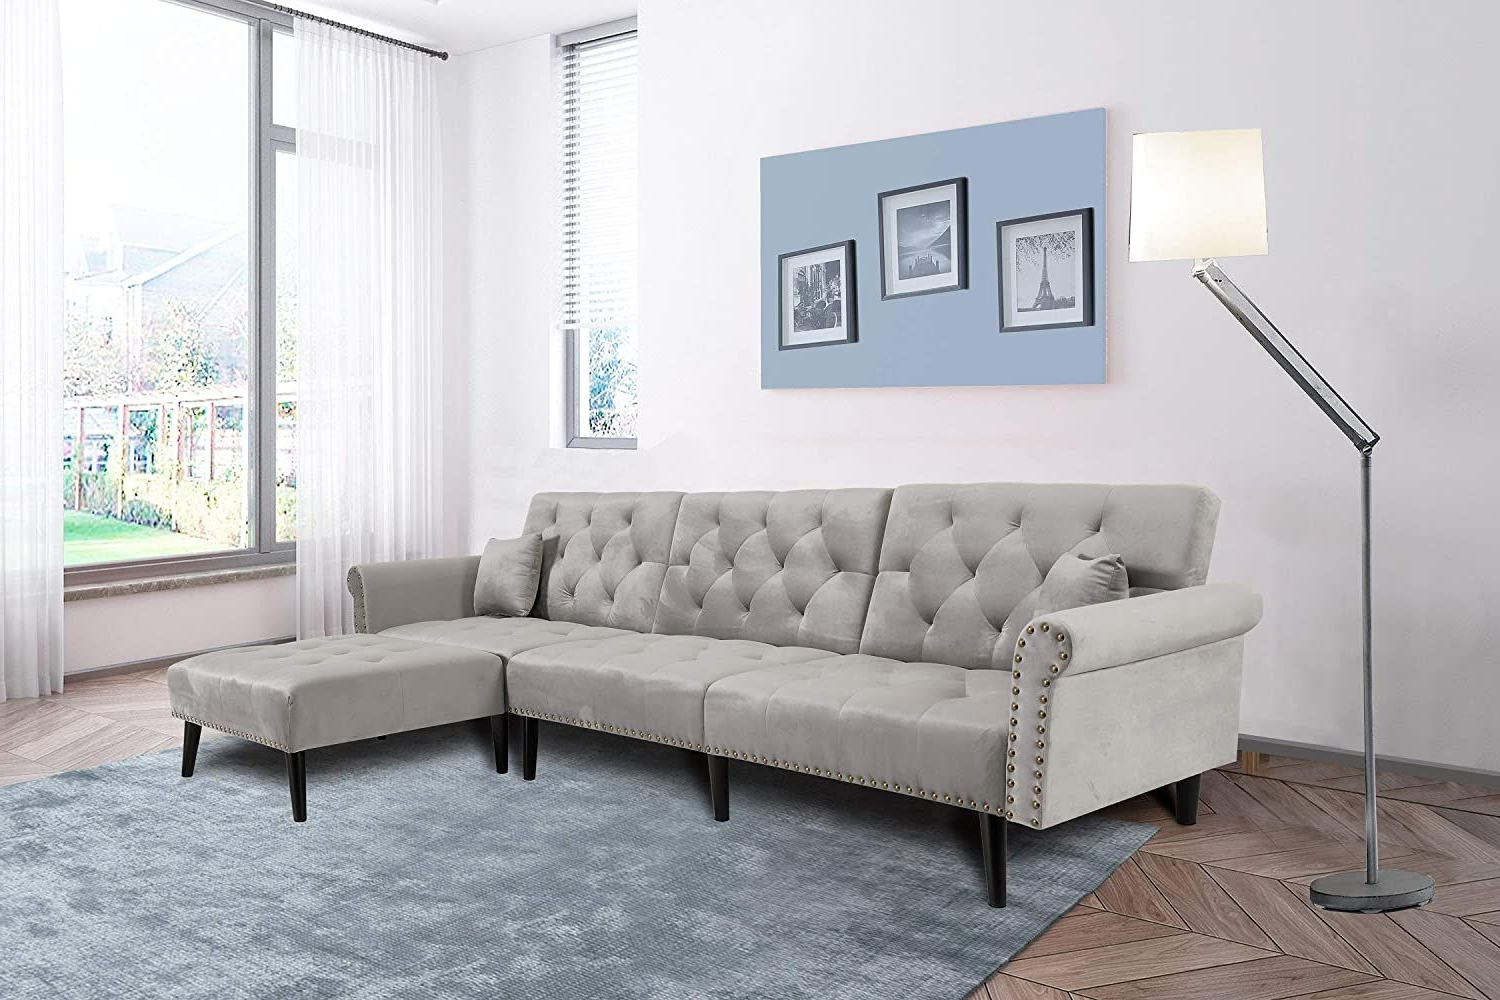 Widely Used Mid Century Upholstered Convertible Sectional Sofa Futon Throughout Dulce Mid Century Chaise Sofas Light Gray (View 18 of 20)